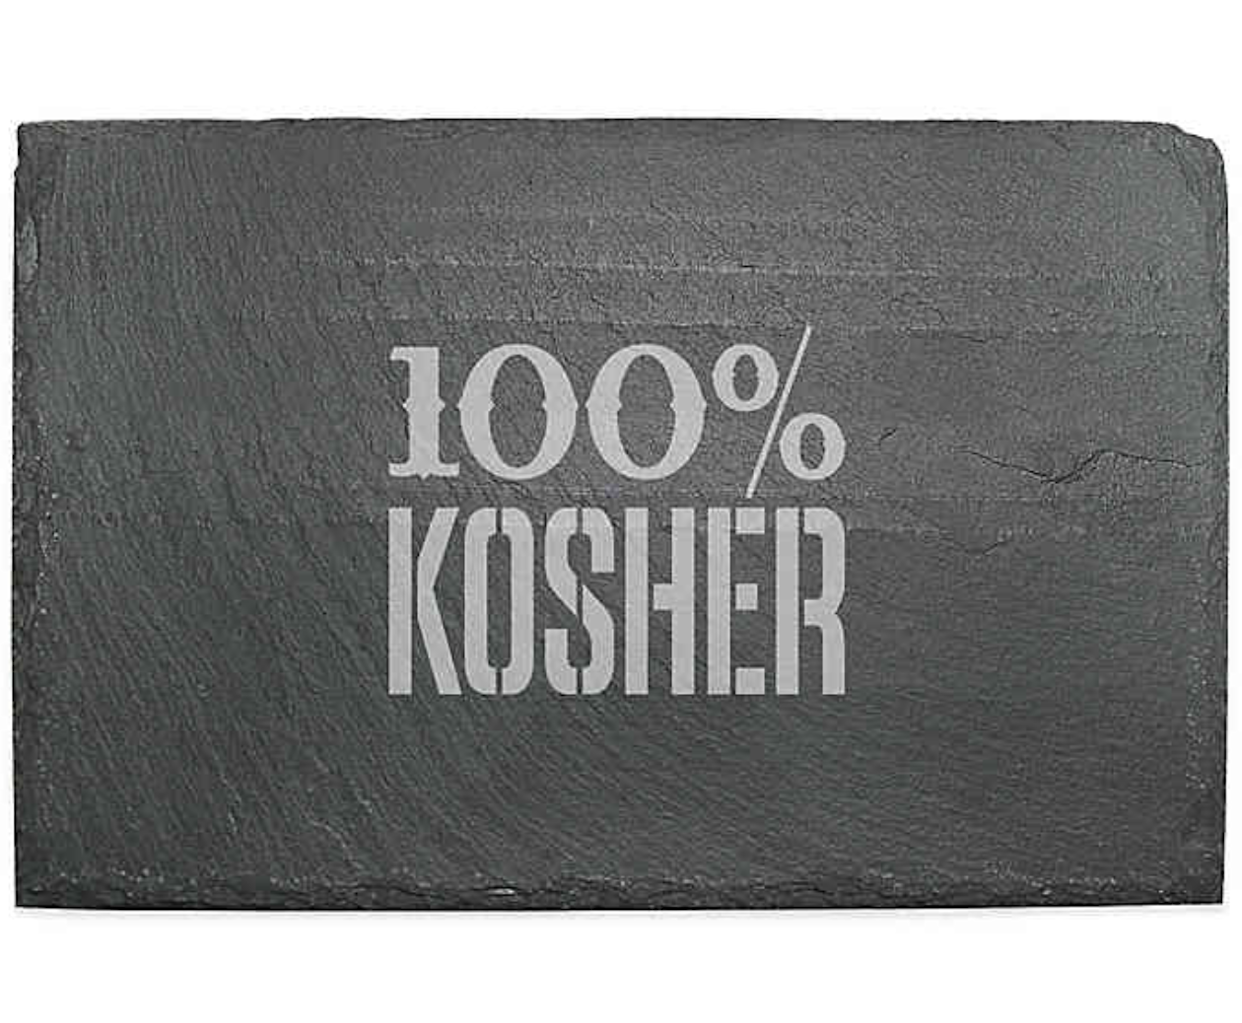 This 100 percent kosher tray is a solid option for holiday dinner parties.